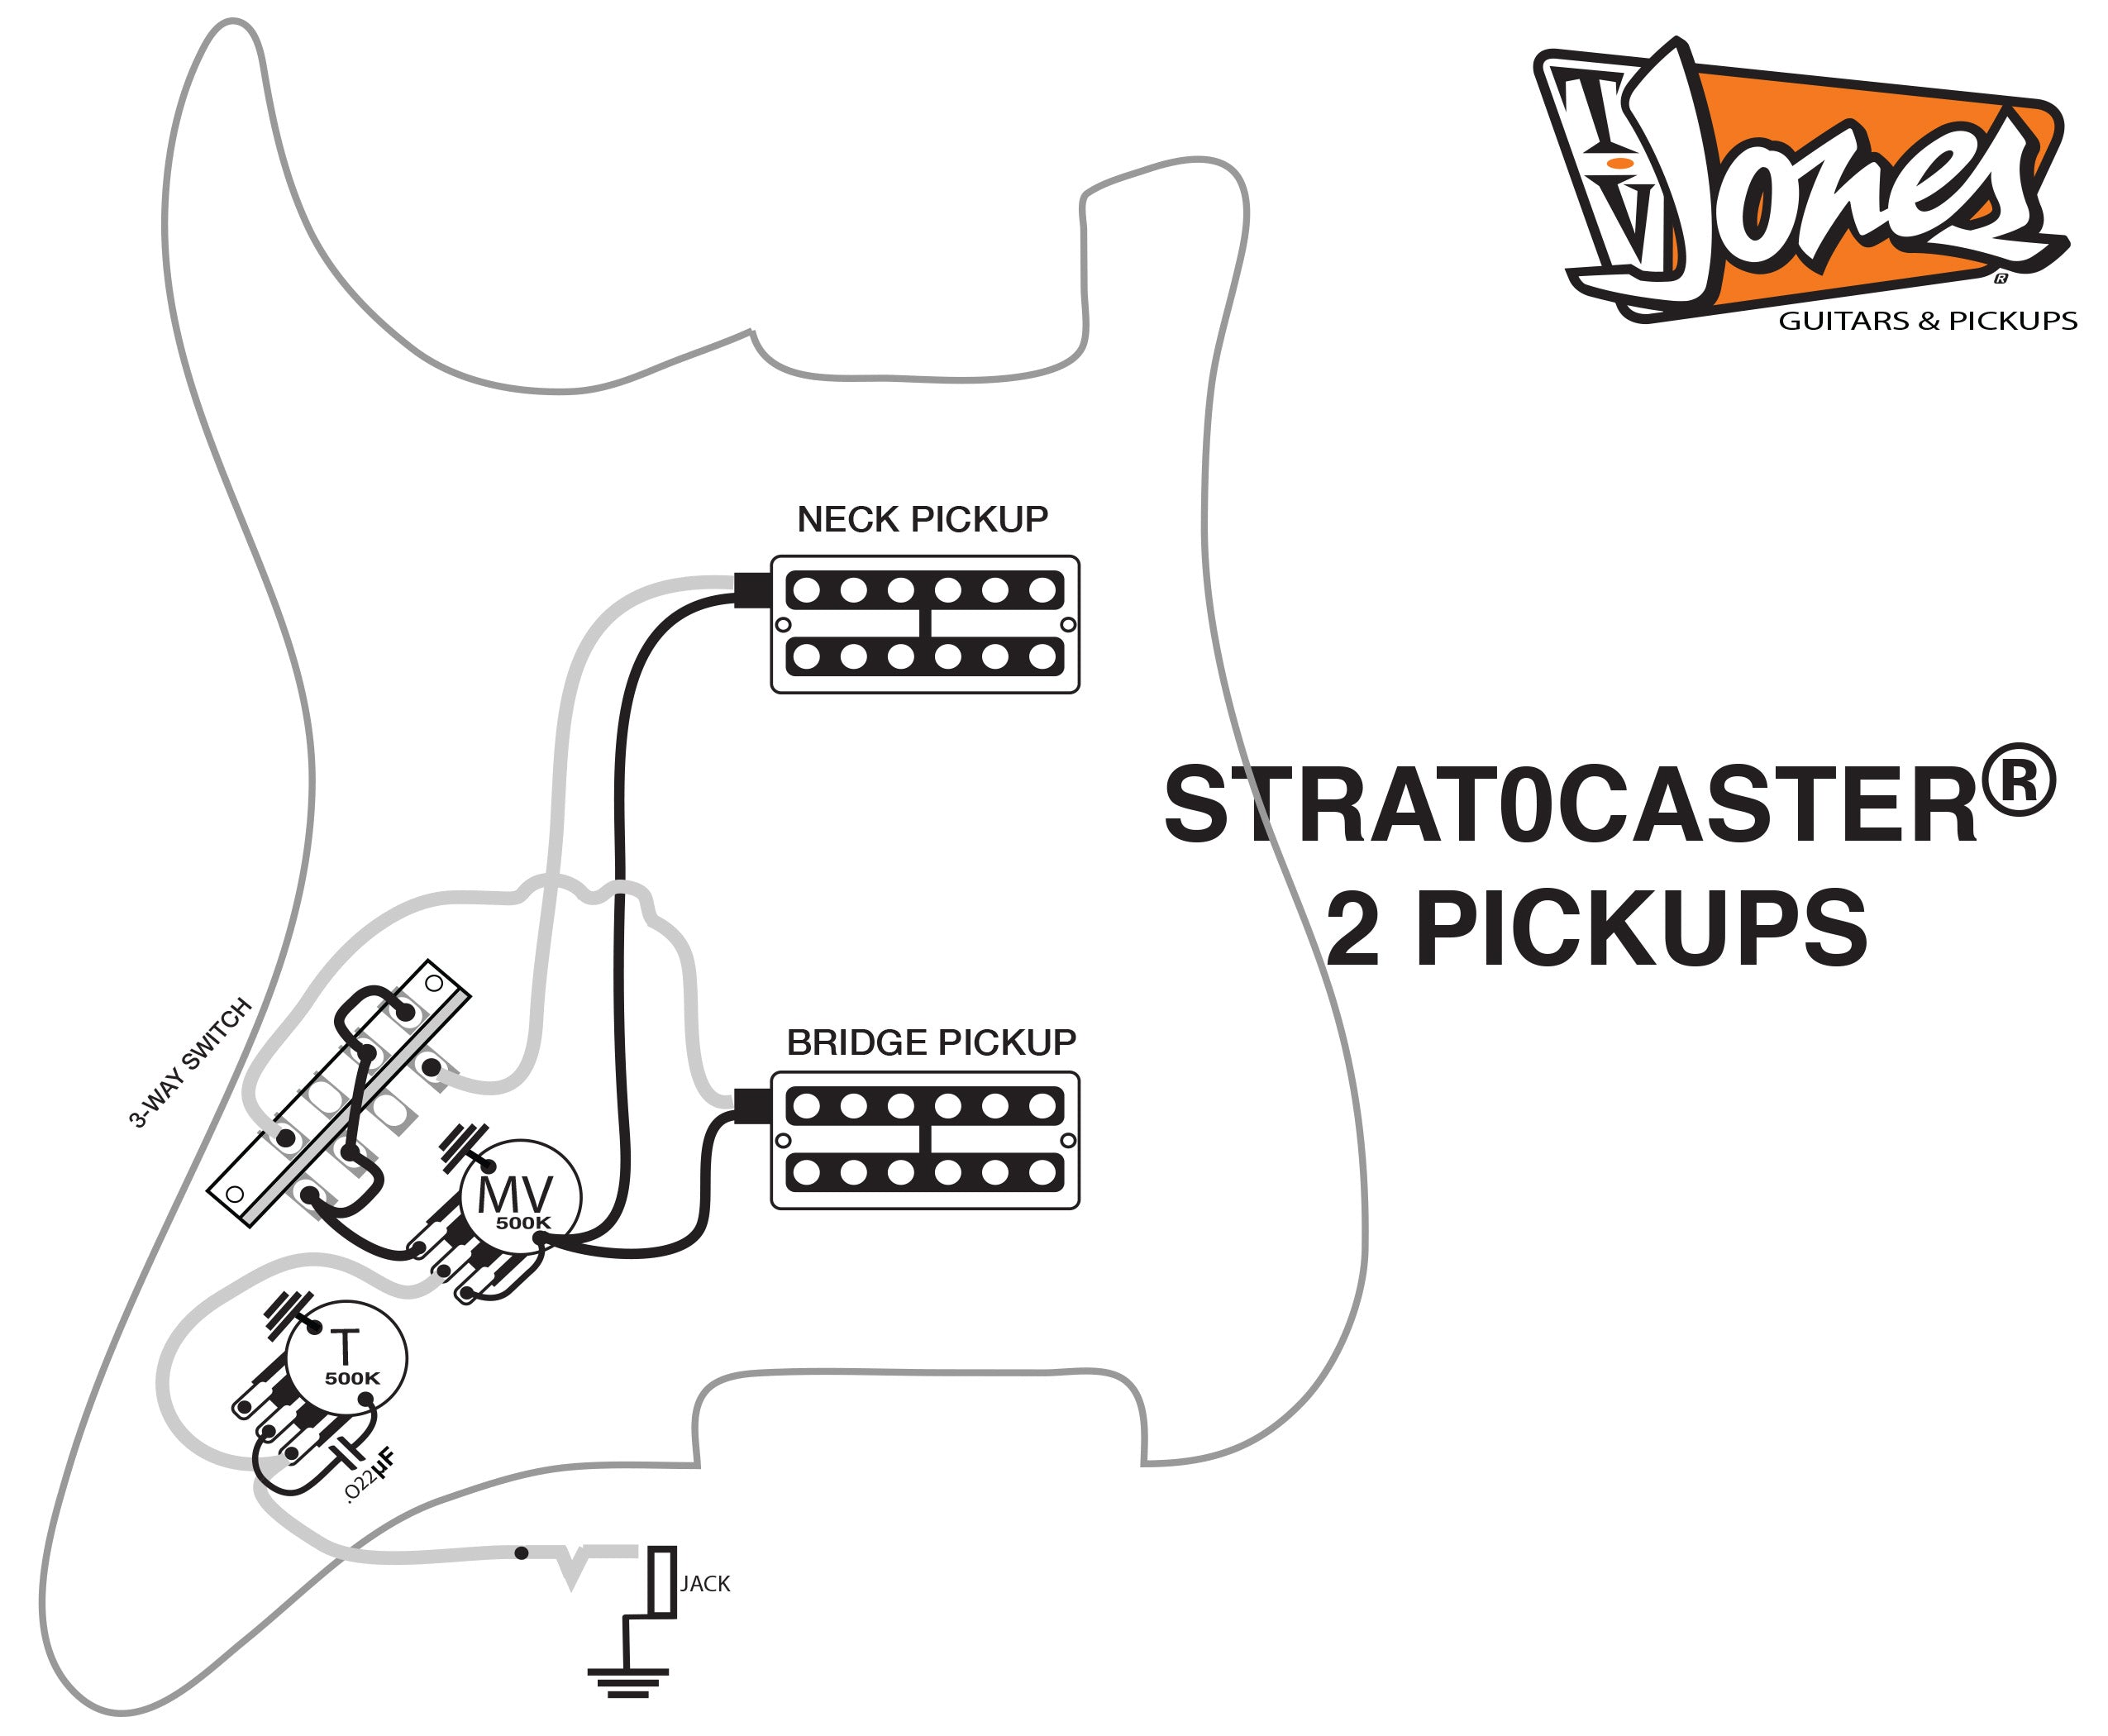 Humbucker Strat Schematics Wiring Diagram Fender Squier 1994 Tv Jones Product Dimensions Fat Guitar